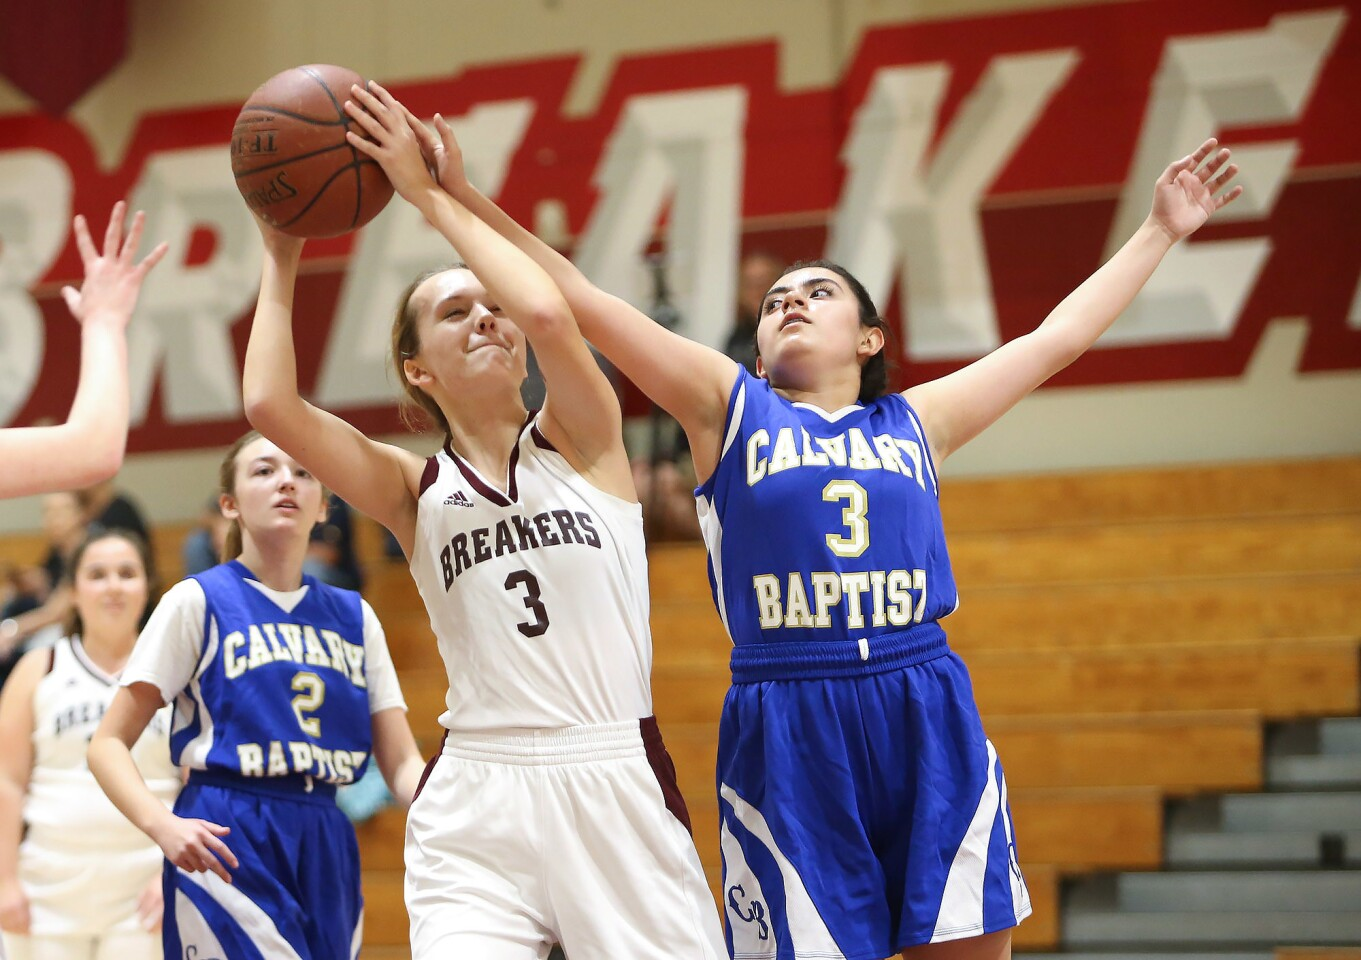 Photo Gallery: Laguna Beach vs. La Verne Calvary Baptist in girls' basketball